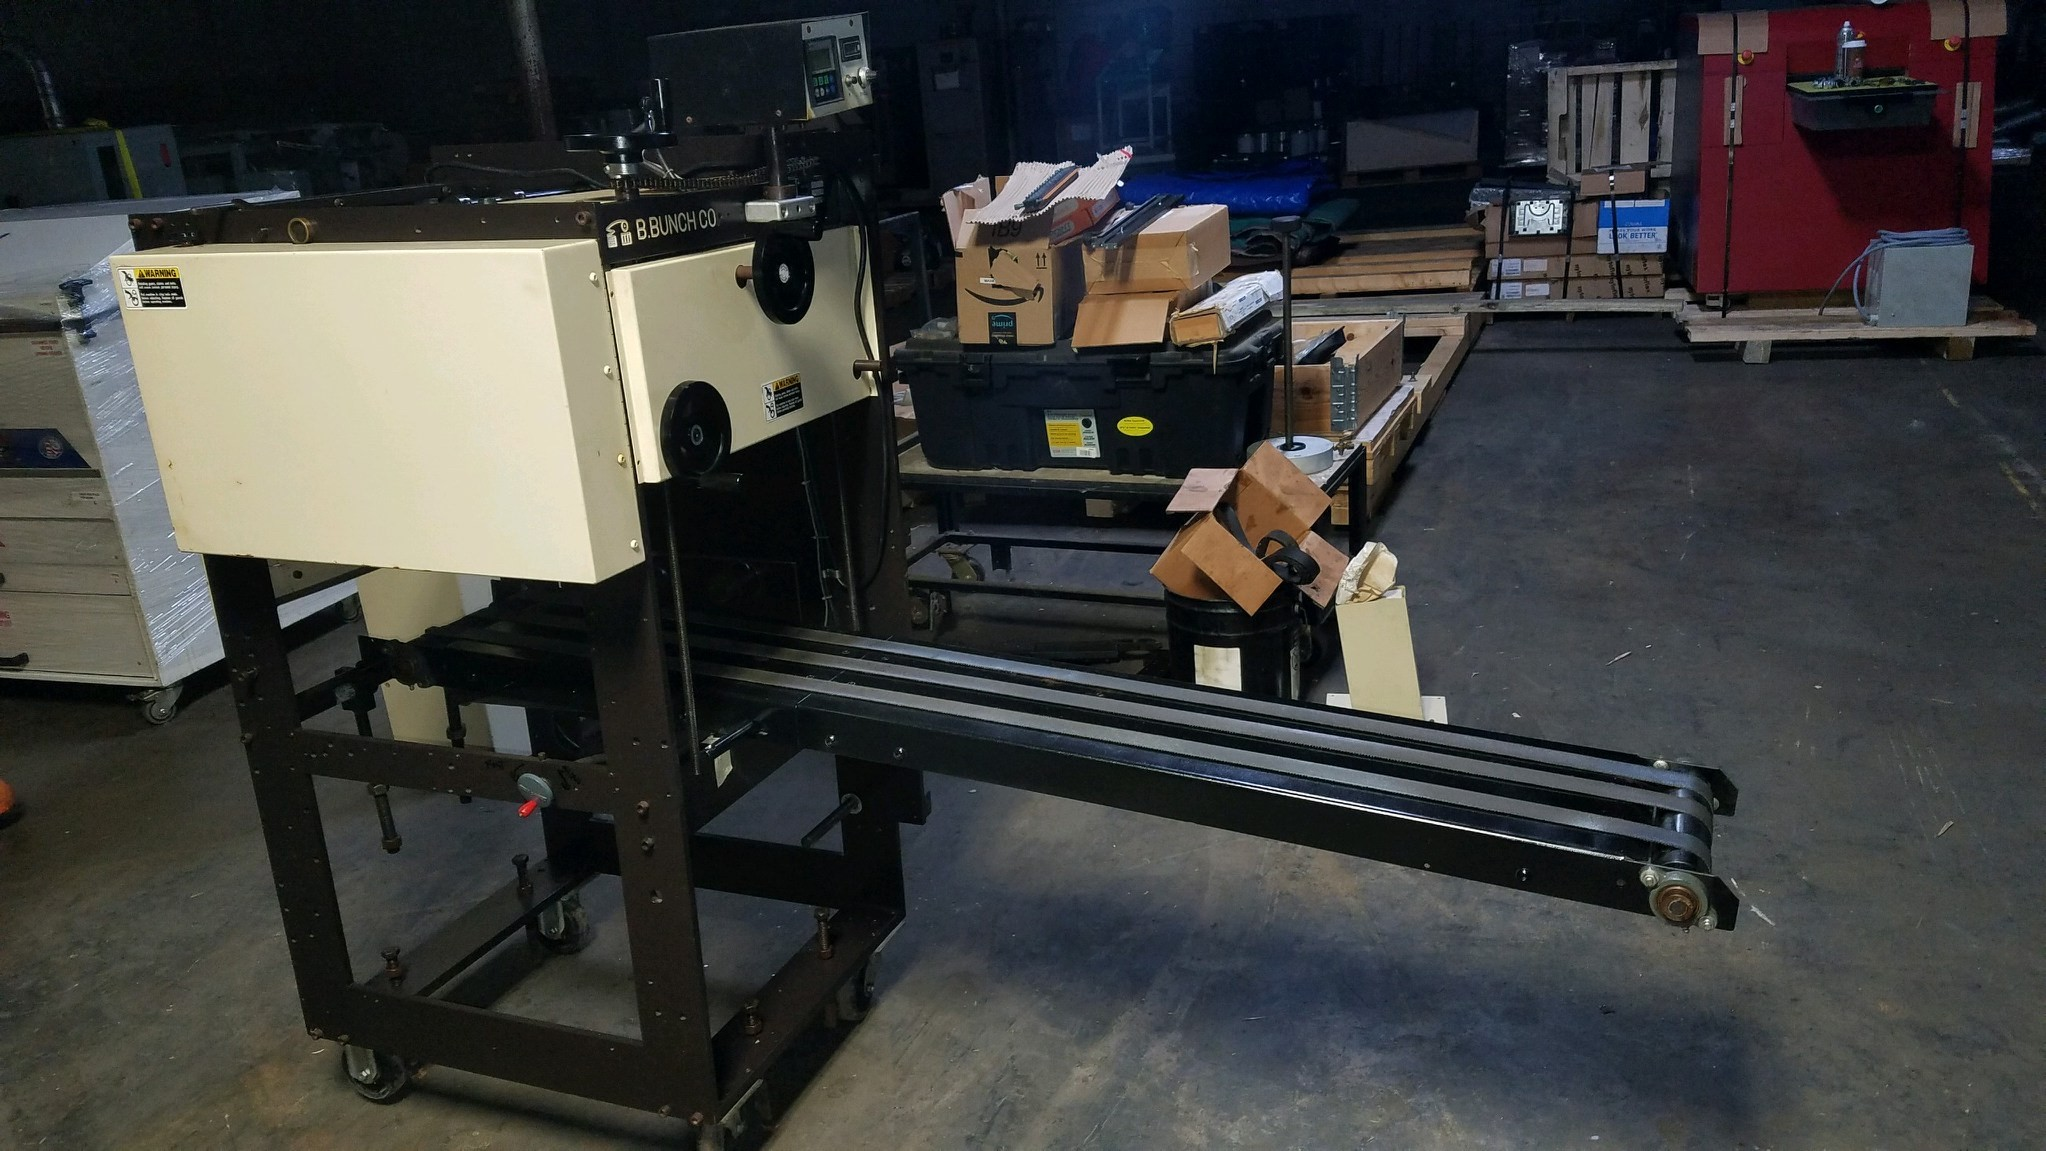 BBunch 590 Fanfolder - Used Flexo Printing Presses and Used Flexographic Equipment-0